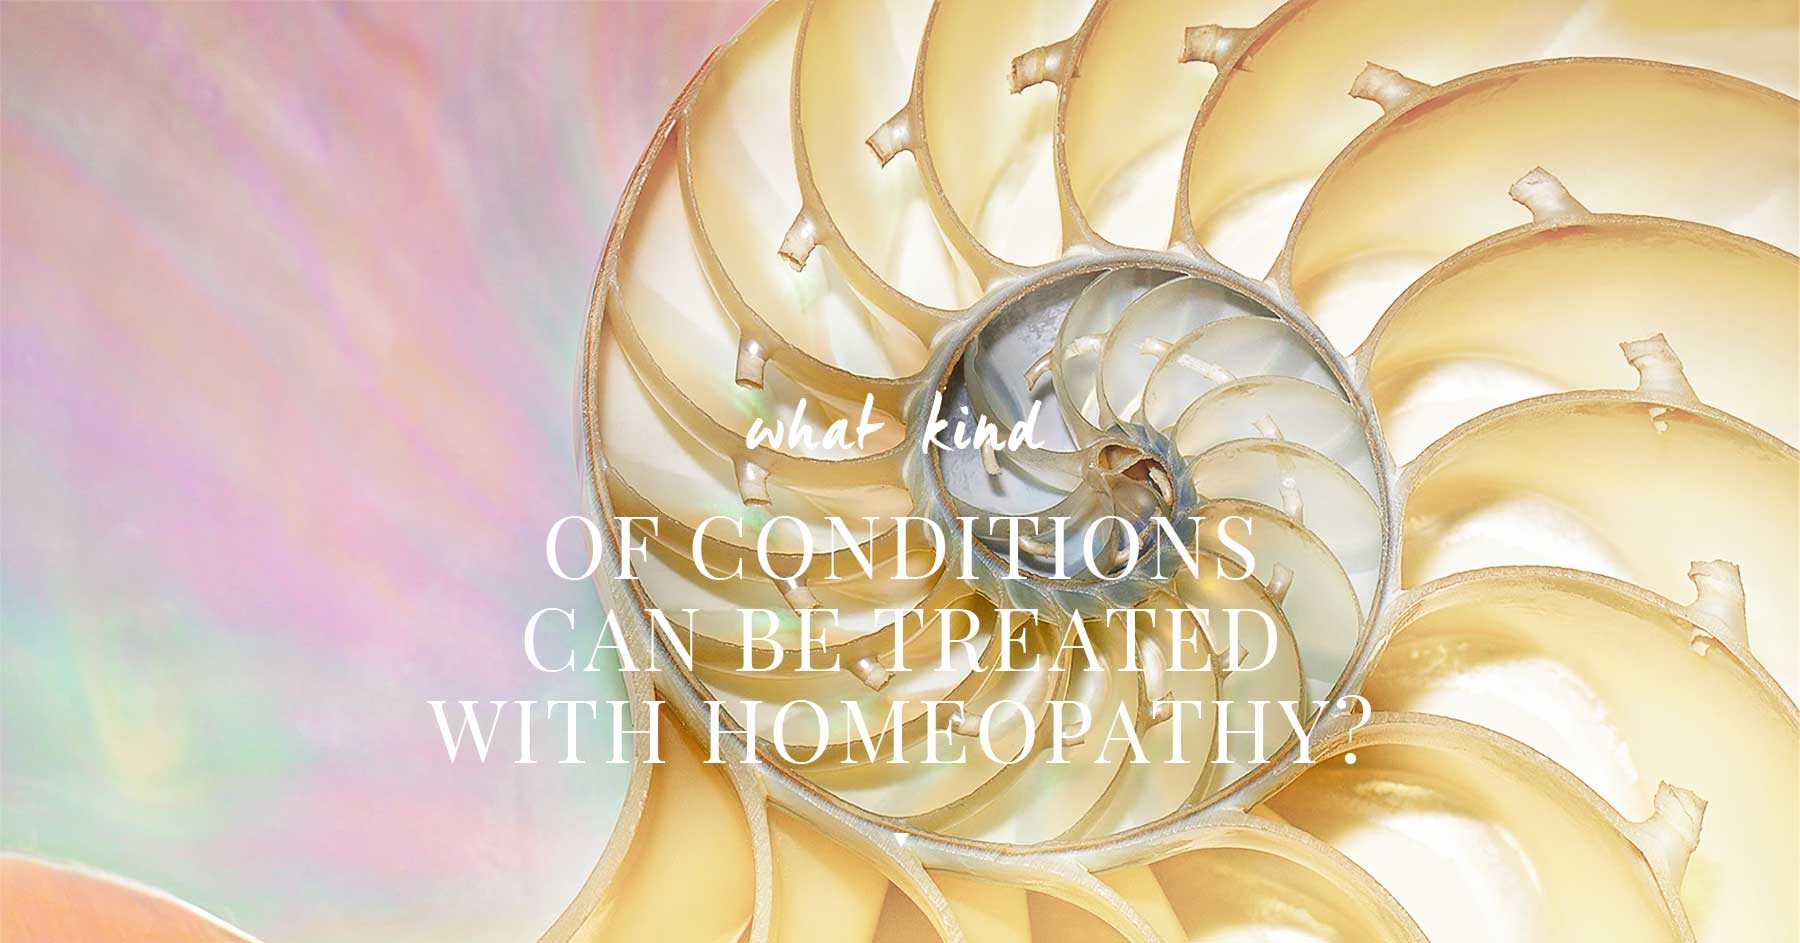 What Kind of Conditions can be Treated with Homeopathy?